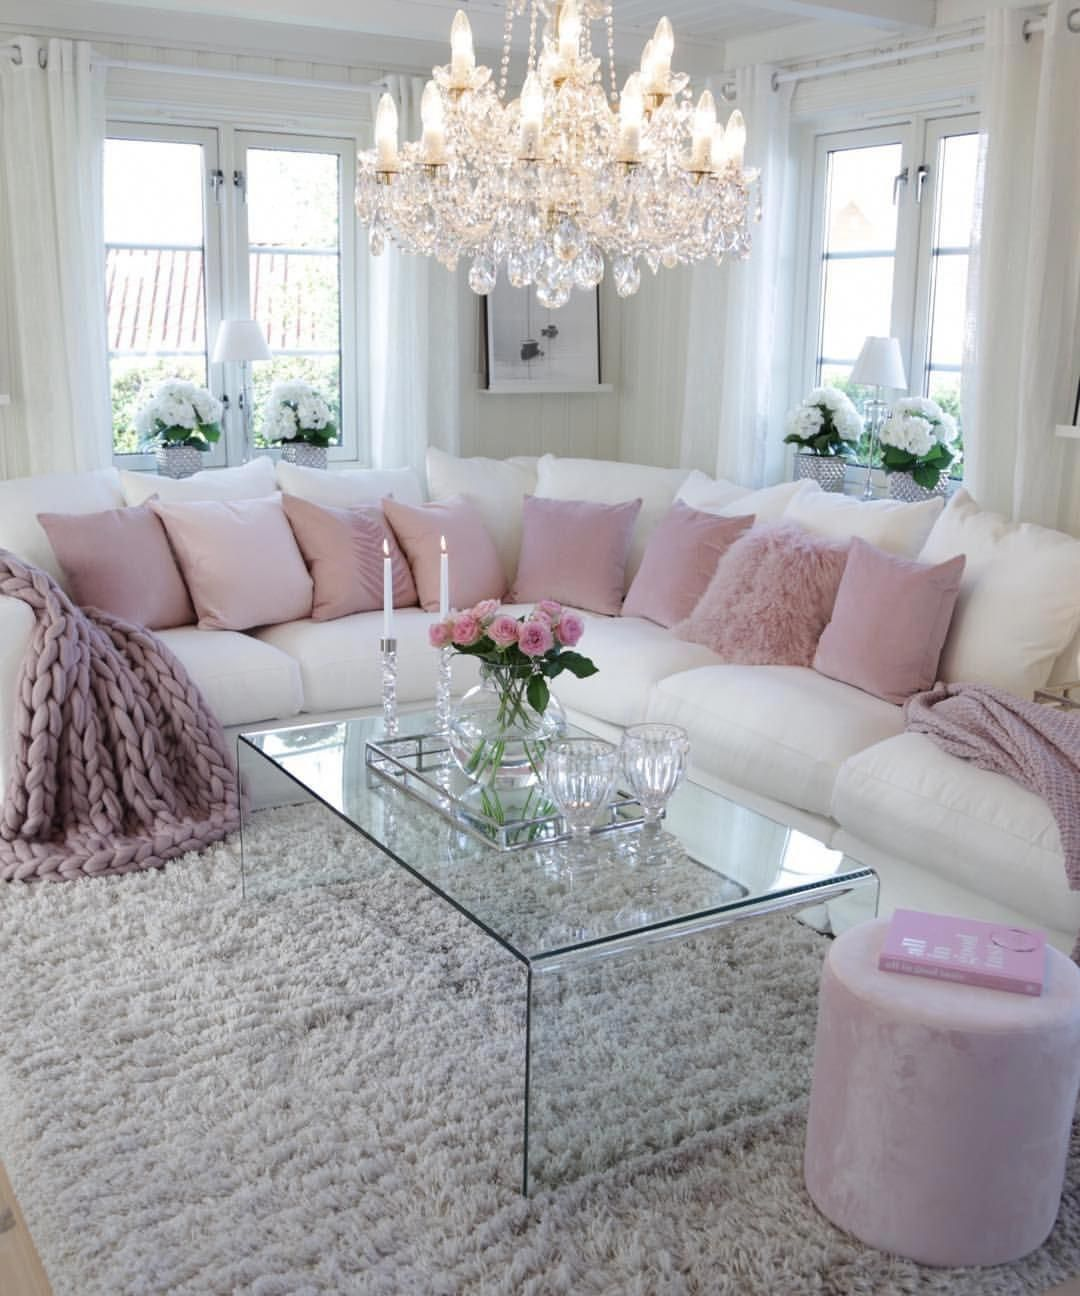 Have A Lovely Evening All Of You Luxurylivingroom Romantic Living Room Pink Living Room Decor Fancy Living Rooms